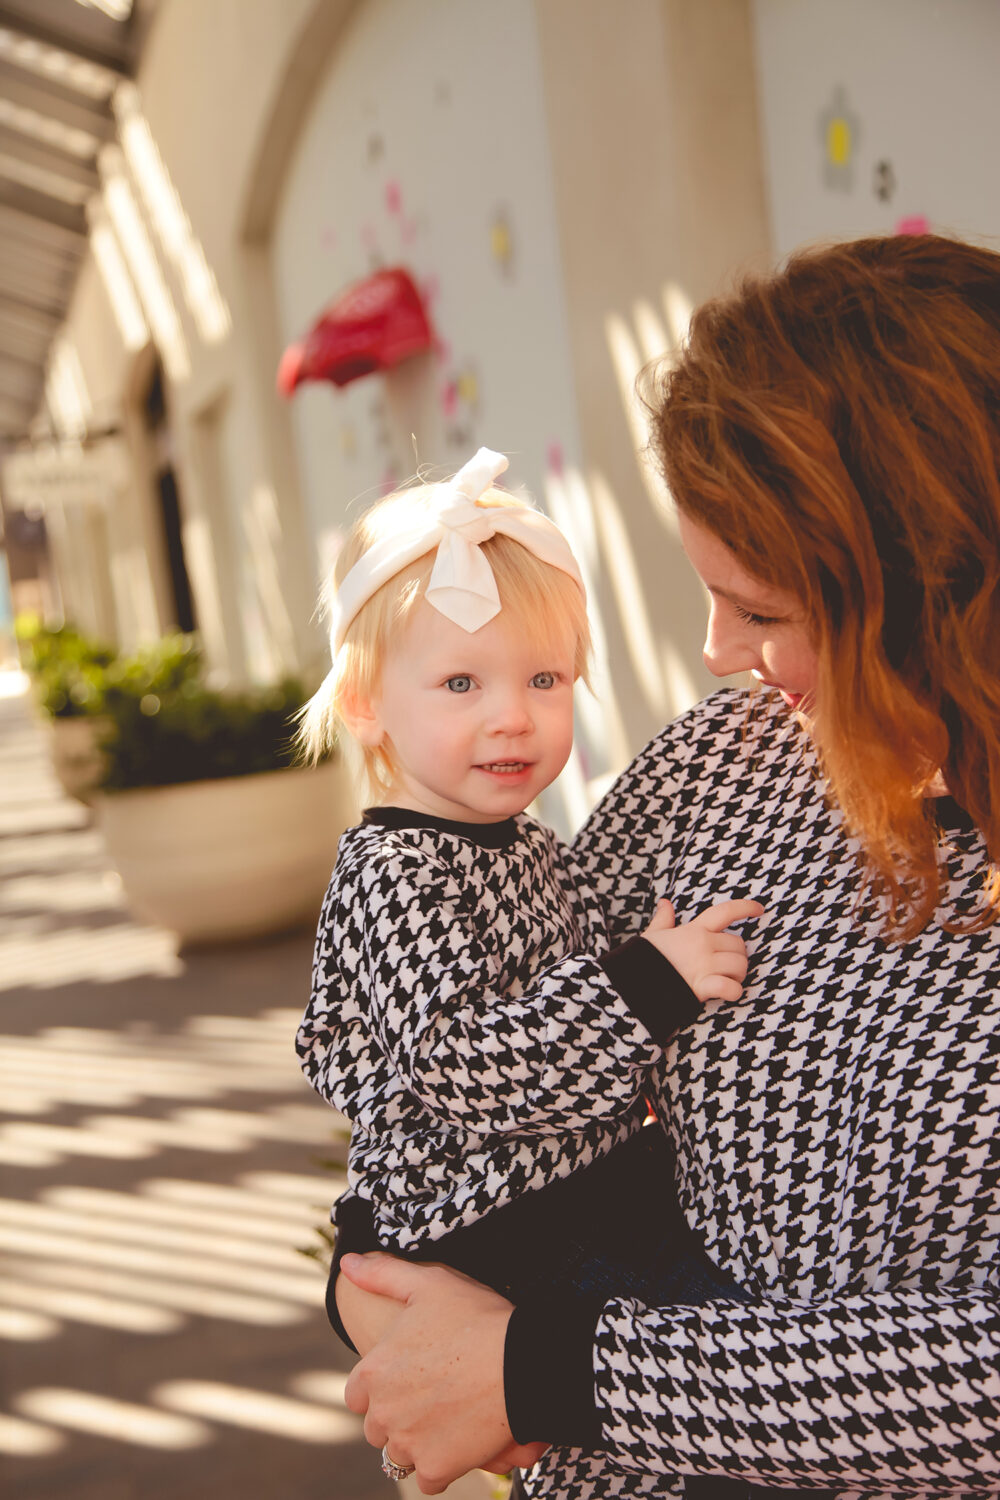 looking for a mommy and me sweater set? This houndstooth sweater is adorable, and can be worn season after season!